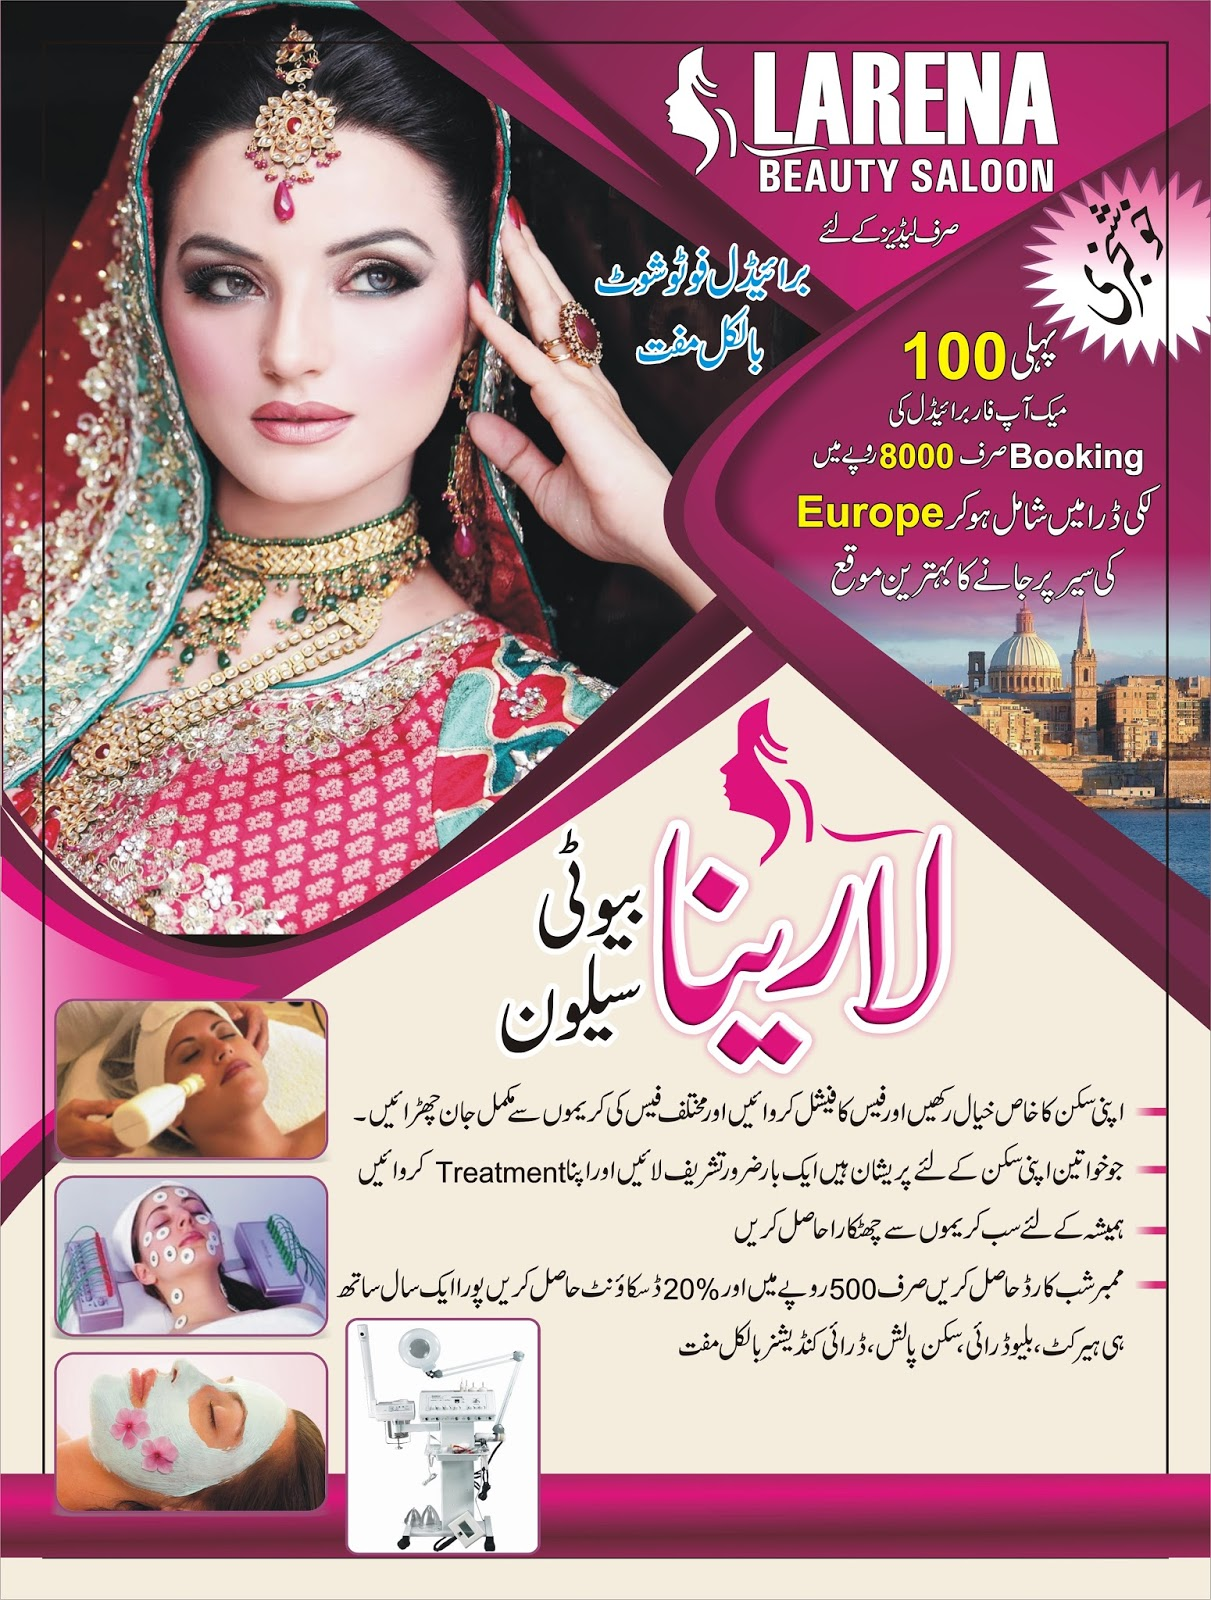 beauty parlour flex design  WAJID ALI: Larena beauty saloon design by wajid ali 03016758892